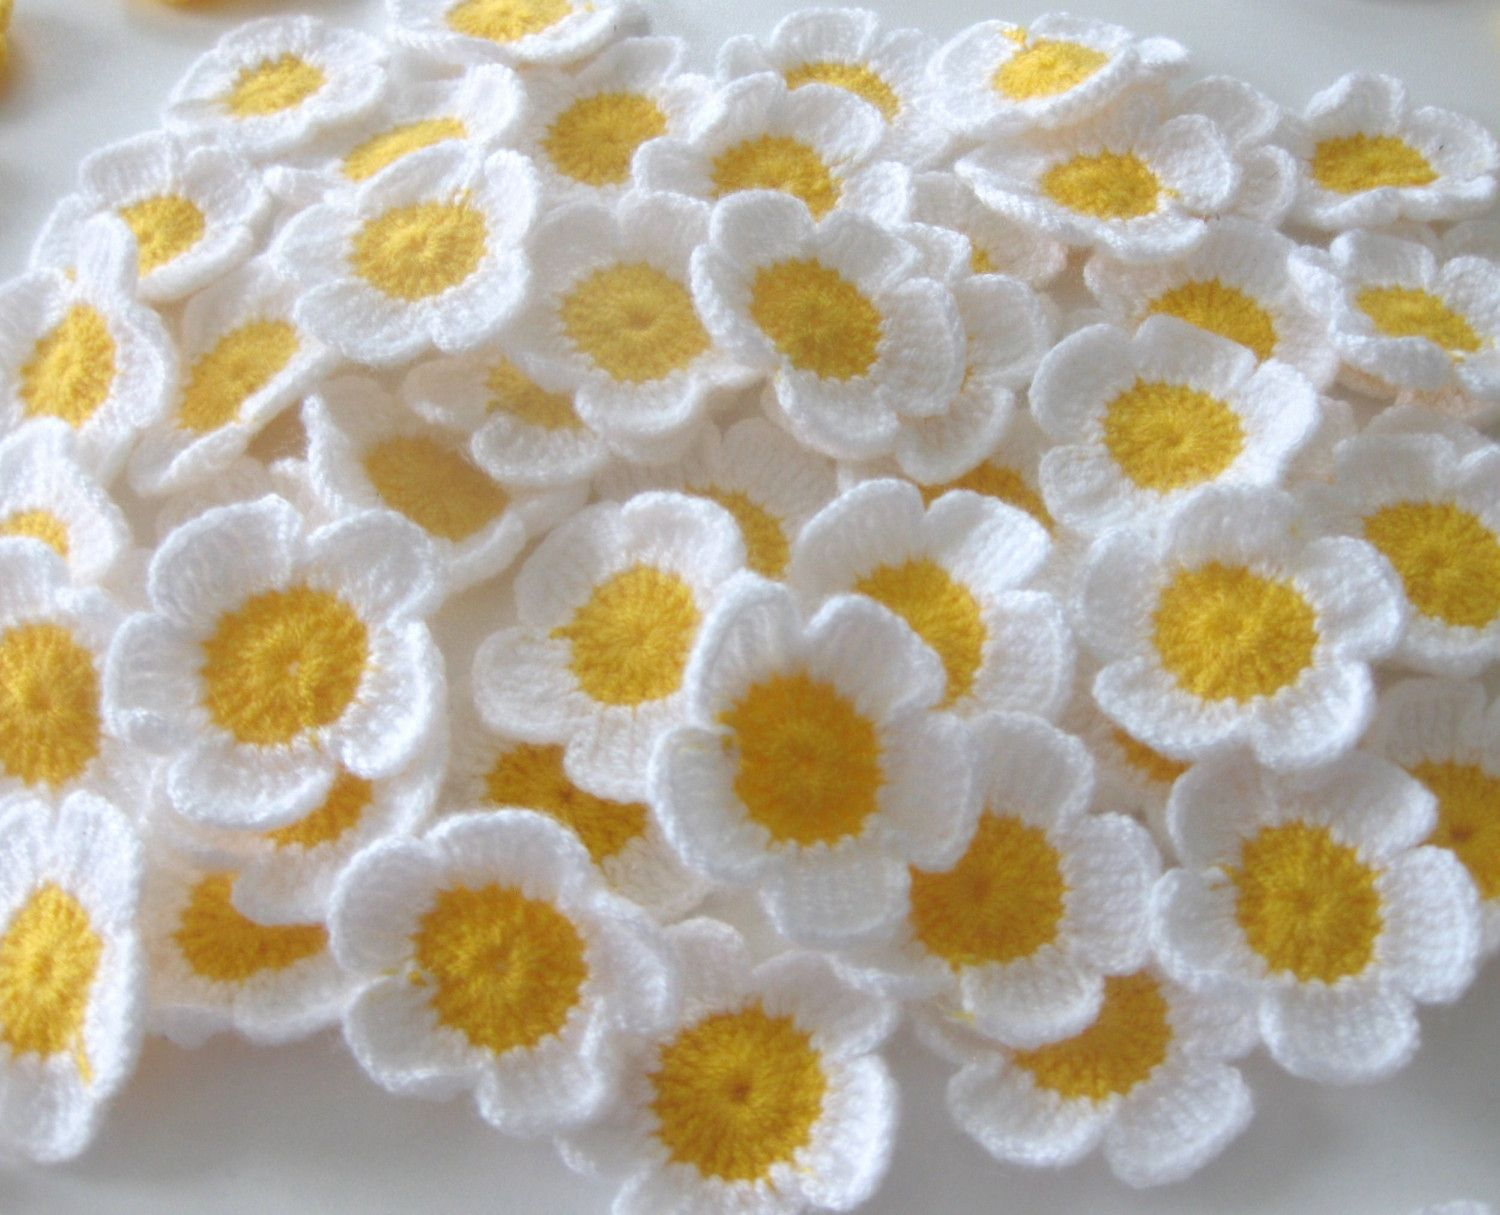 Crochet flowers 10 pieces daisy white yellow handmade by blitz68 crochet flowers 10 pieces daisy white yellow handmade by blitz68 izmirmasajfo